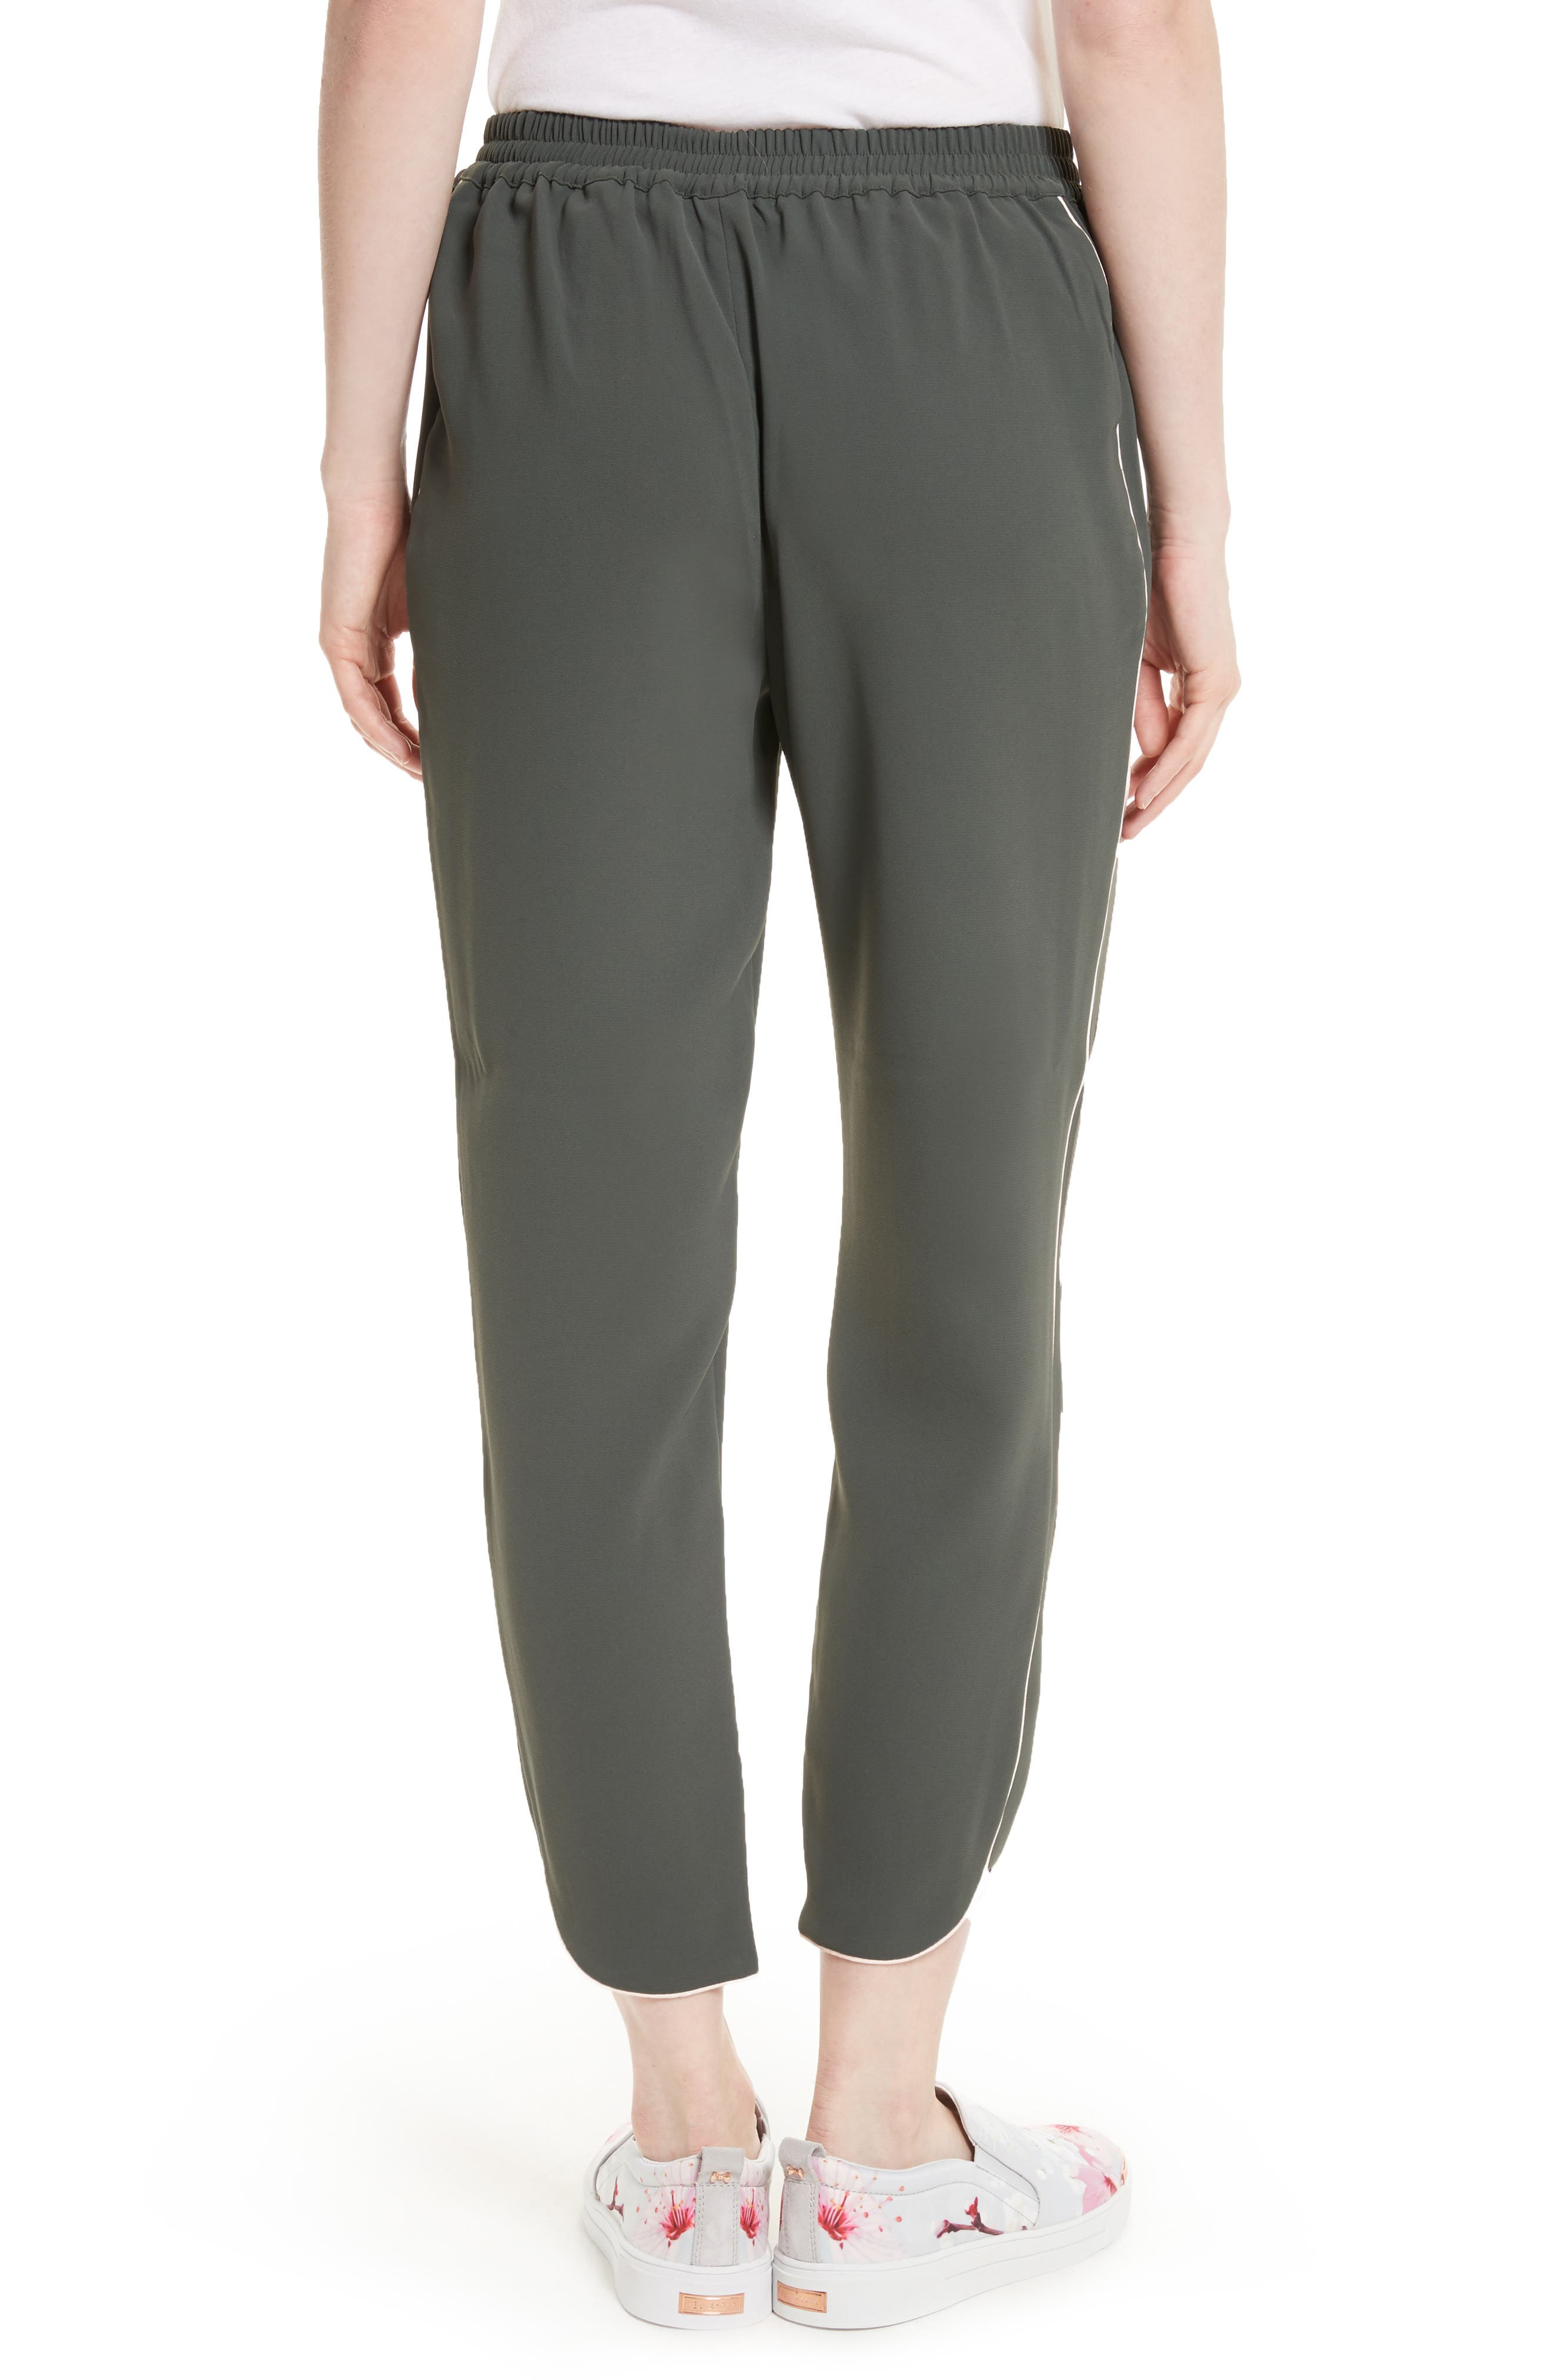 Quenbie Piped Jogger Pants,                             Alternate thumbnail 2, color,                             311